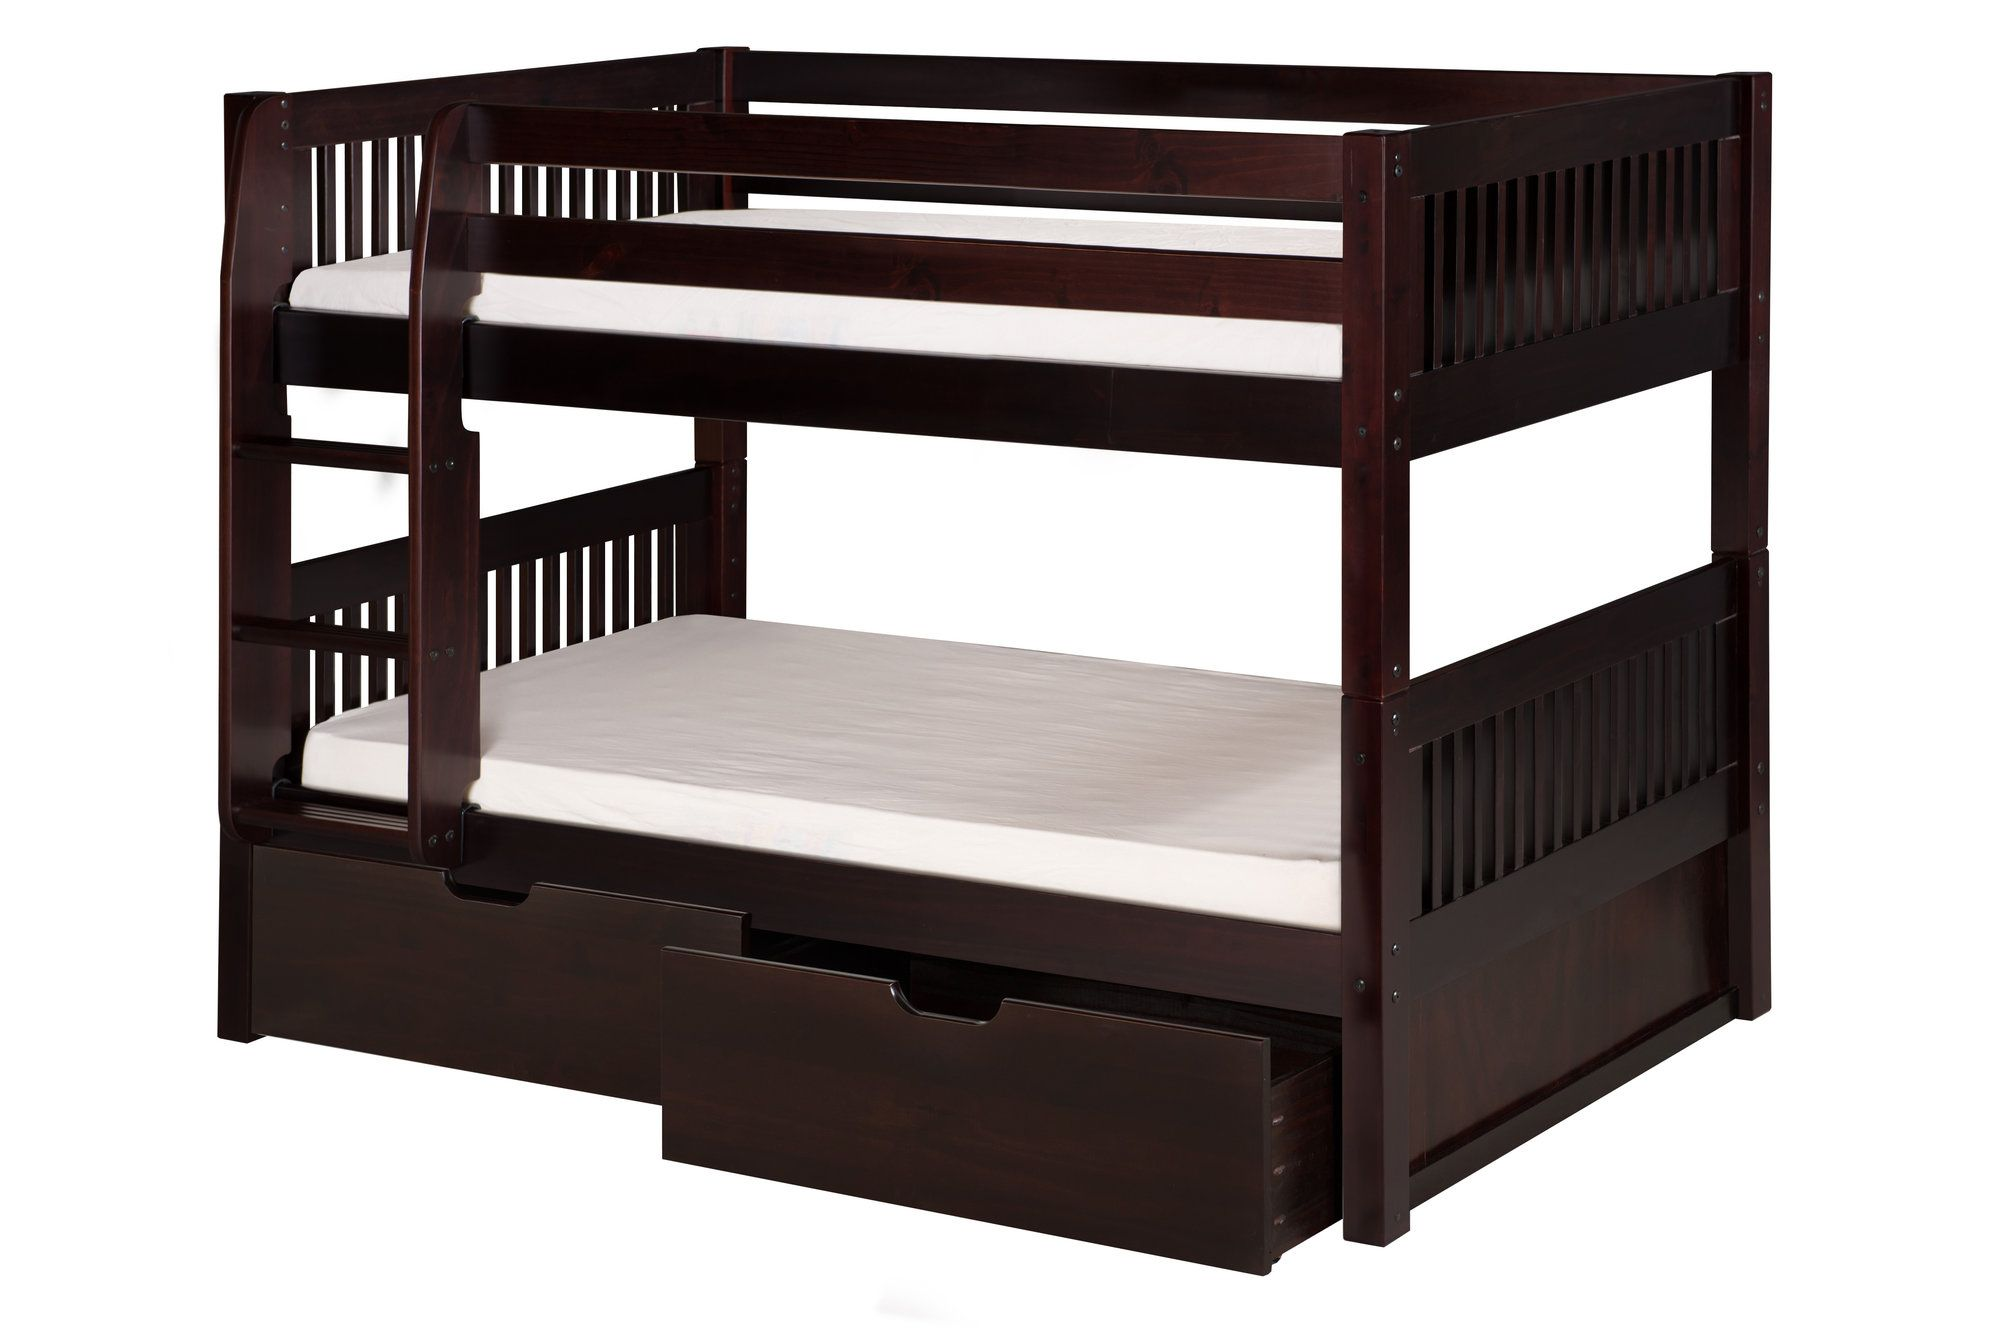 Low loft bed with desk and storage  Isabelle Twin Bunk Bed with Storage  Products  Pinterest  Bunk